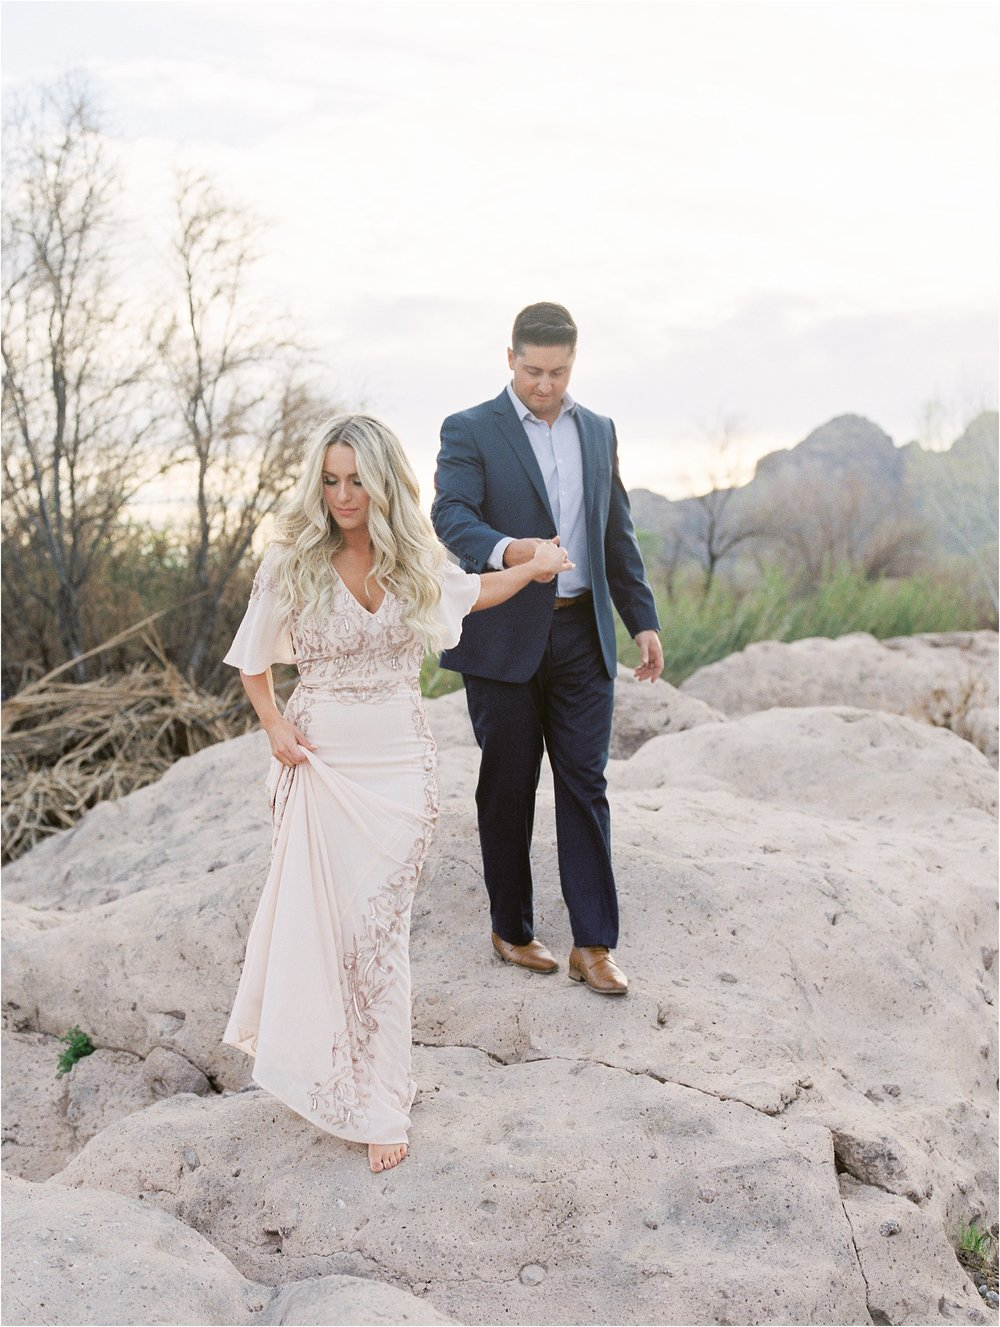 Sarah Jane Photography Film Hybrid Scottsdale Phoenix Arizona Destination Wedding Photographer salt river asos engagement britney tj_0018.jpg